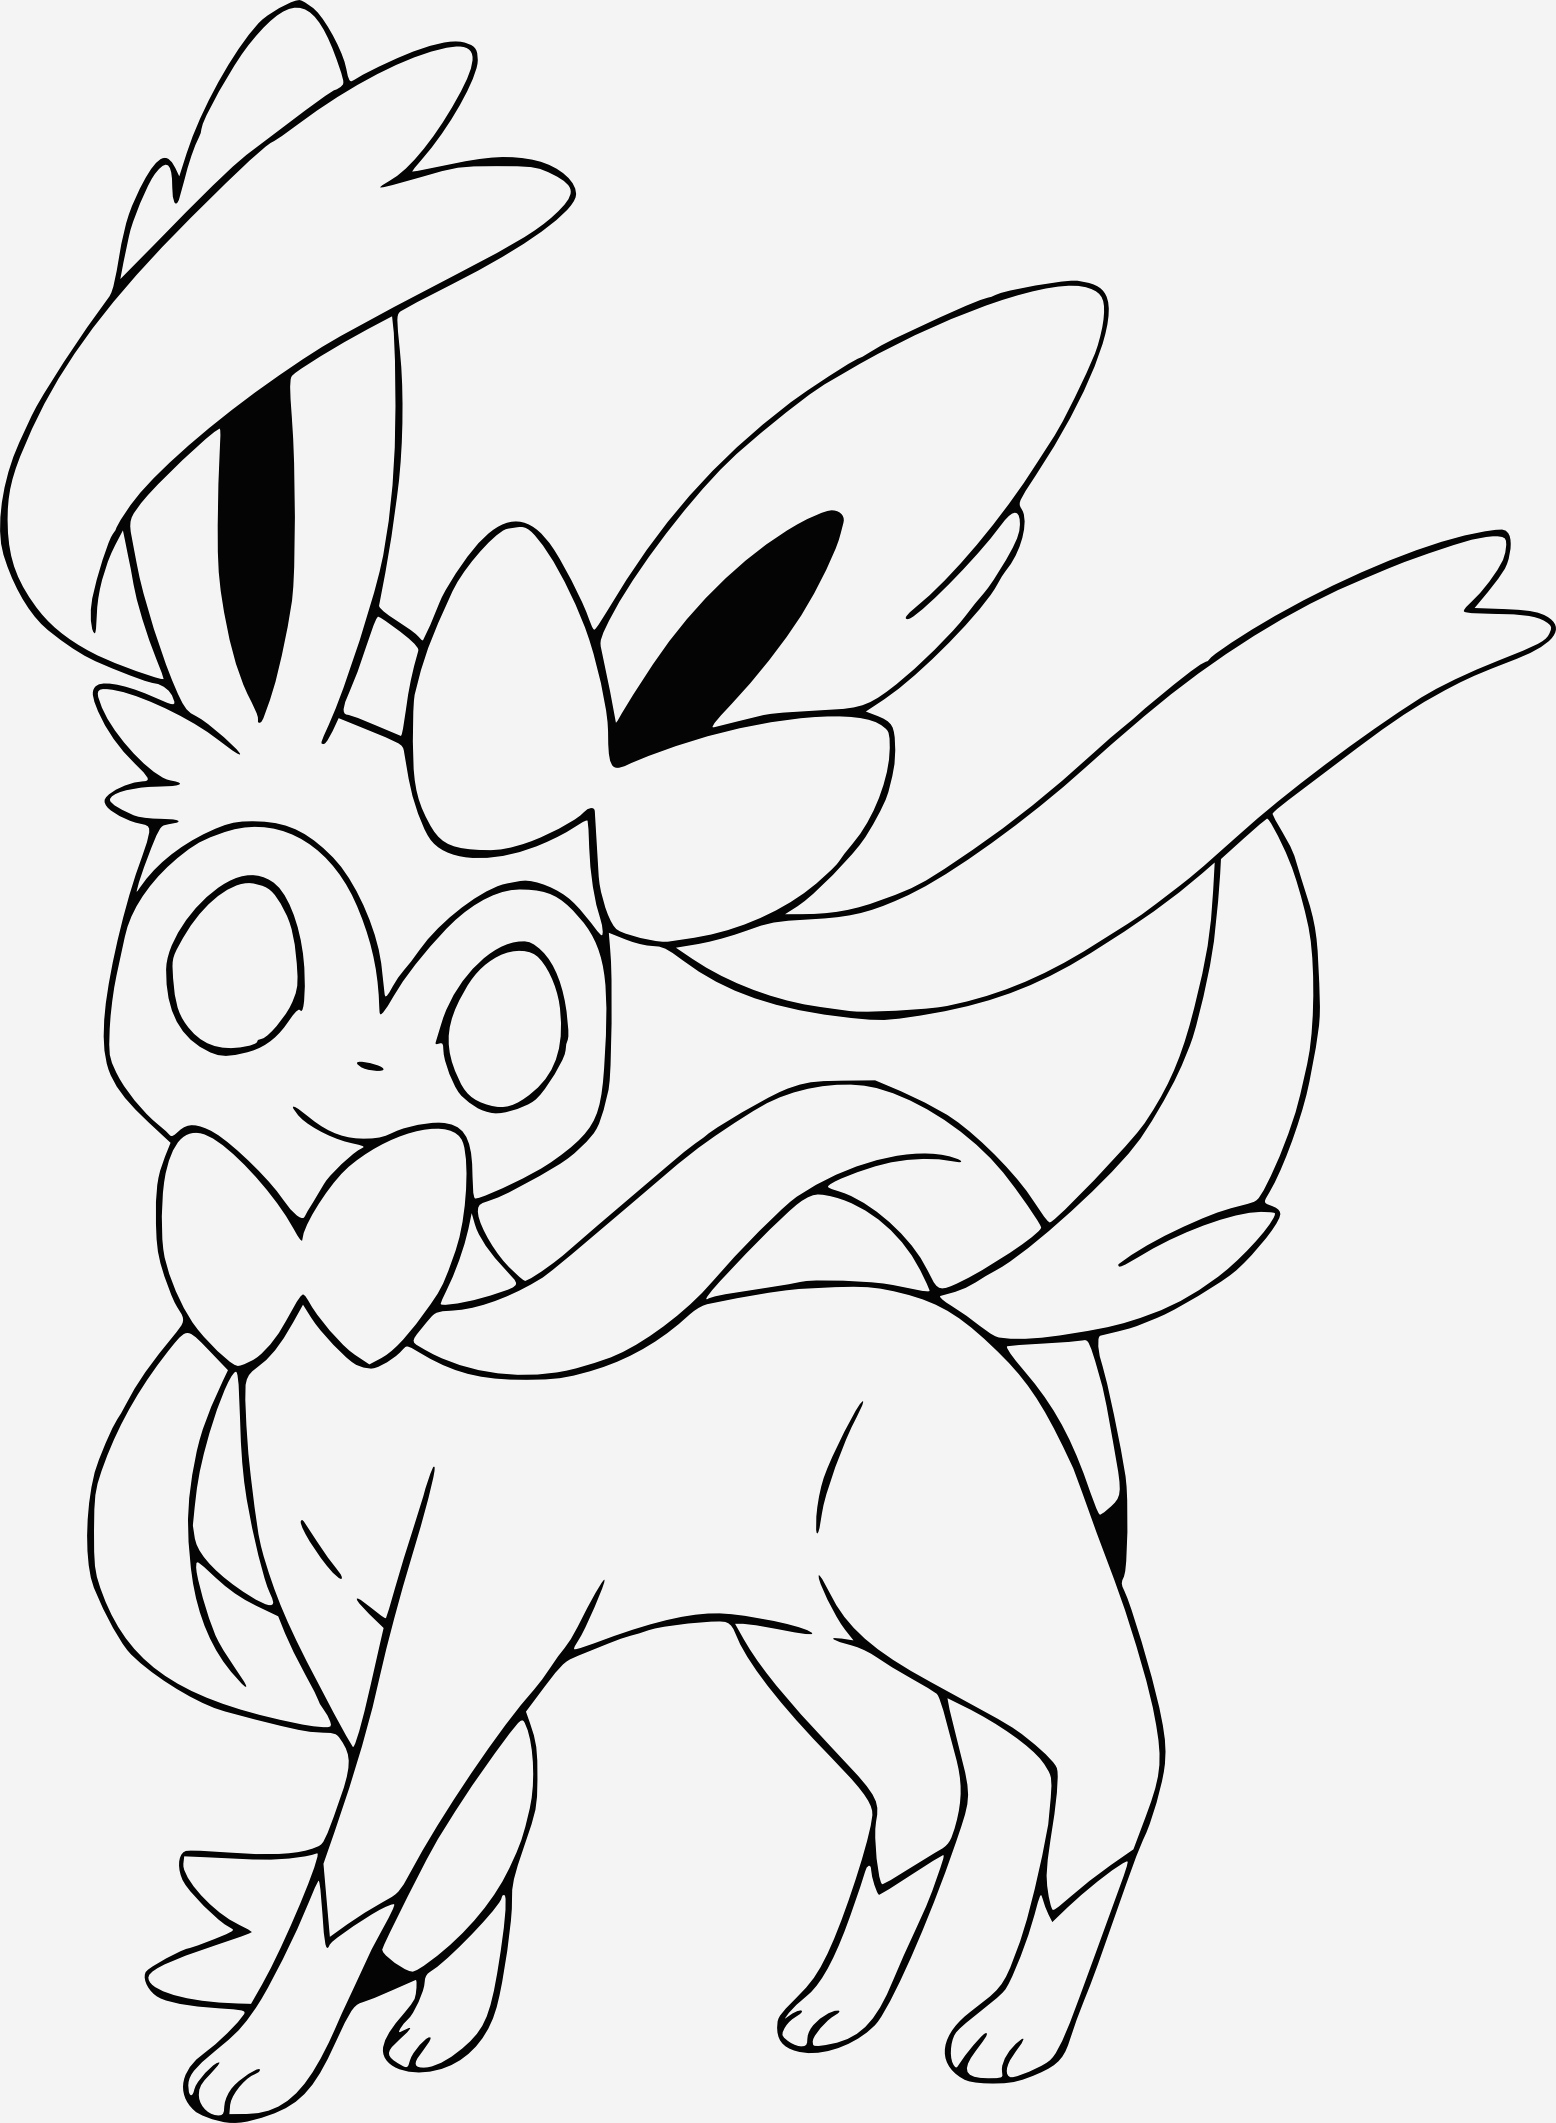 Coloriage Pokemon Evoli Inspirational Coloriage Nymphali Pokemon X Et Y Gratuit   Imprimer Of Coloriage Pokemon Evoli